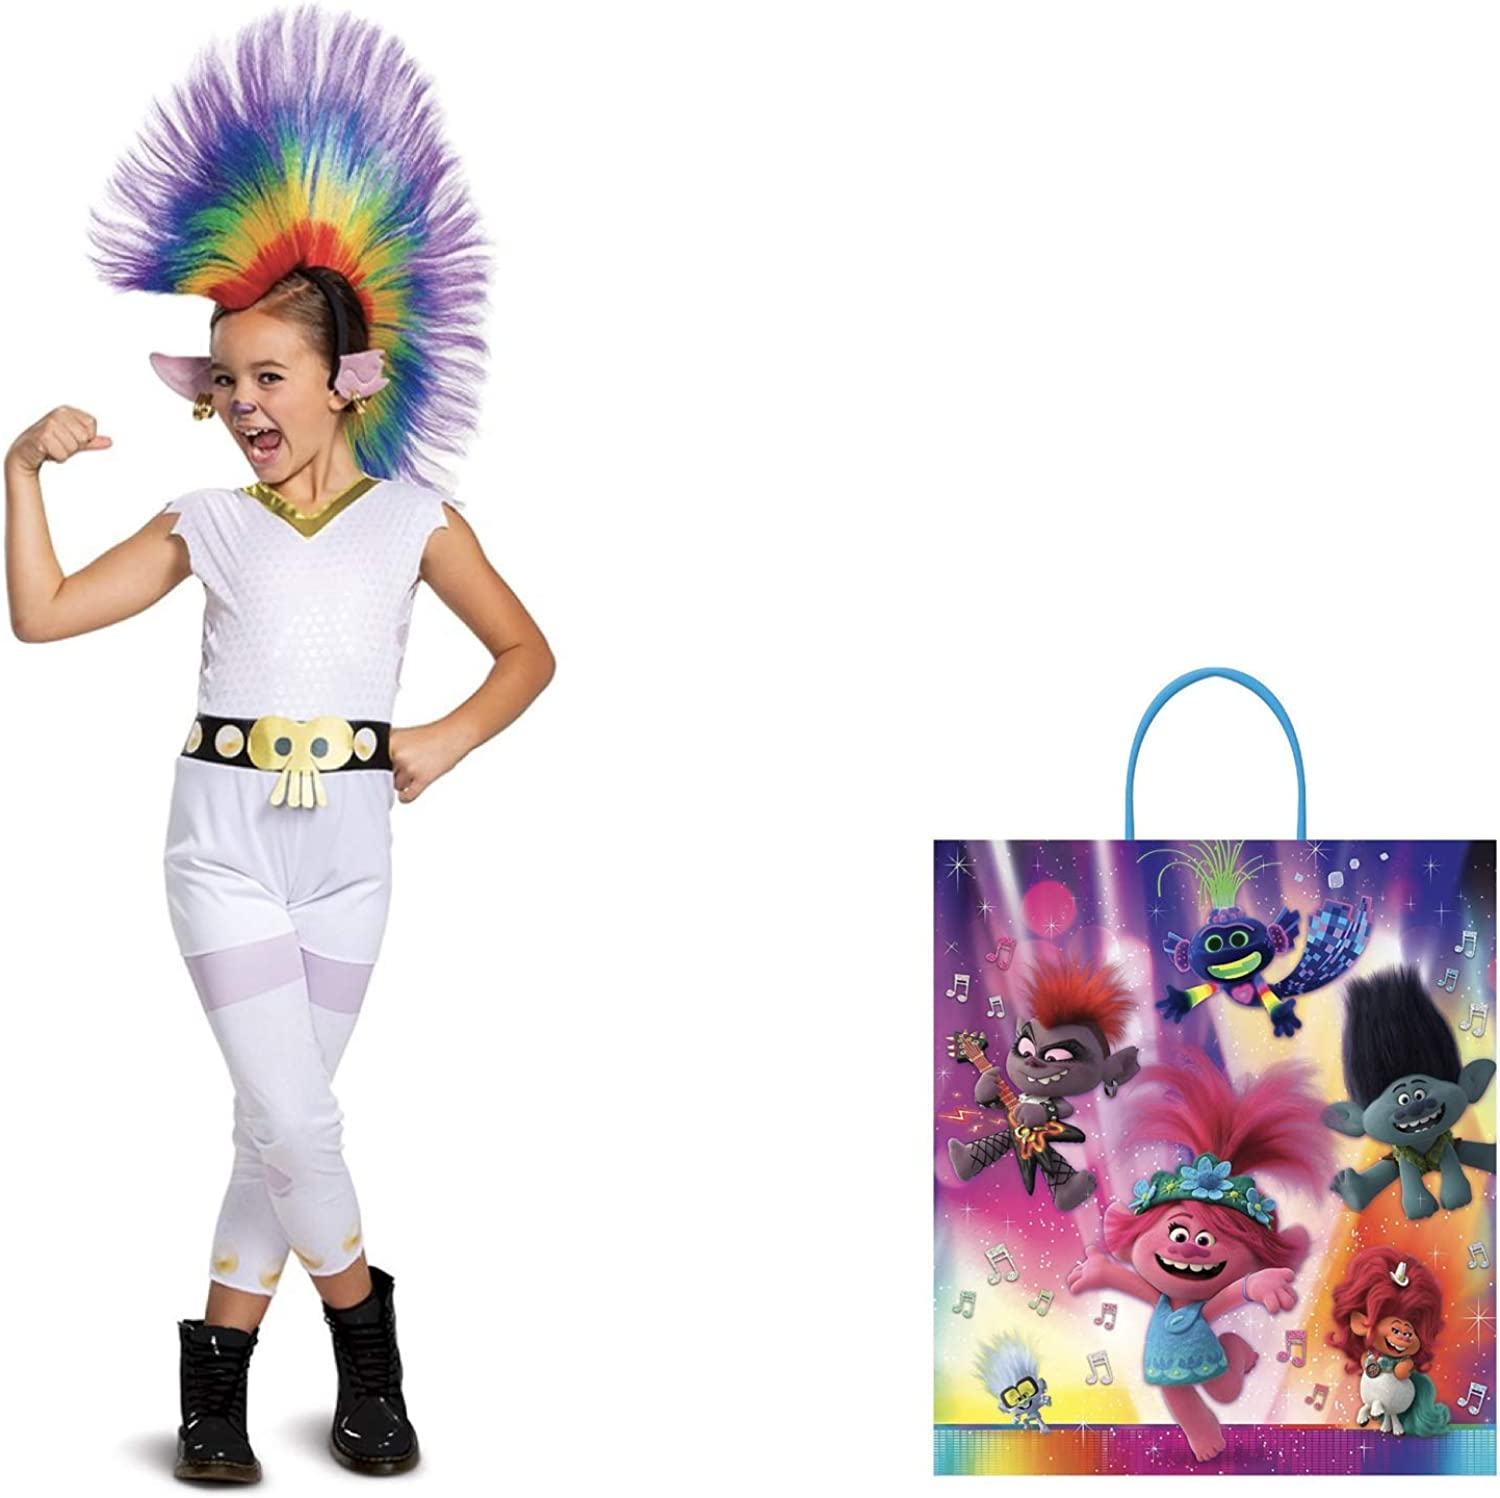 Queen Barb Costume Trolls World Tour Classic Rainbow with Wig